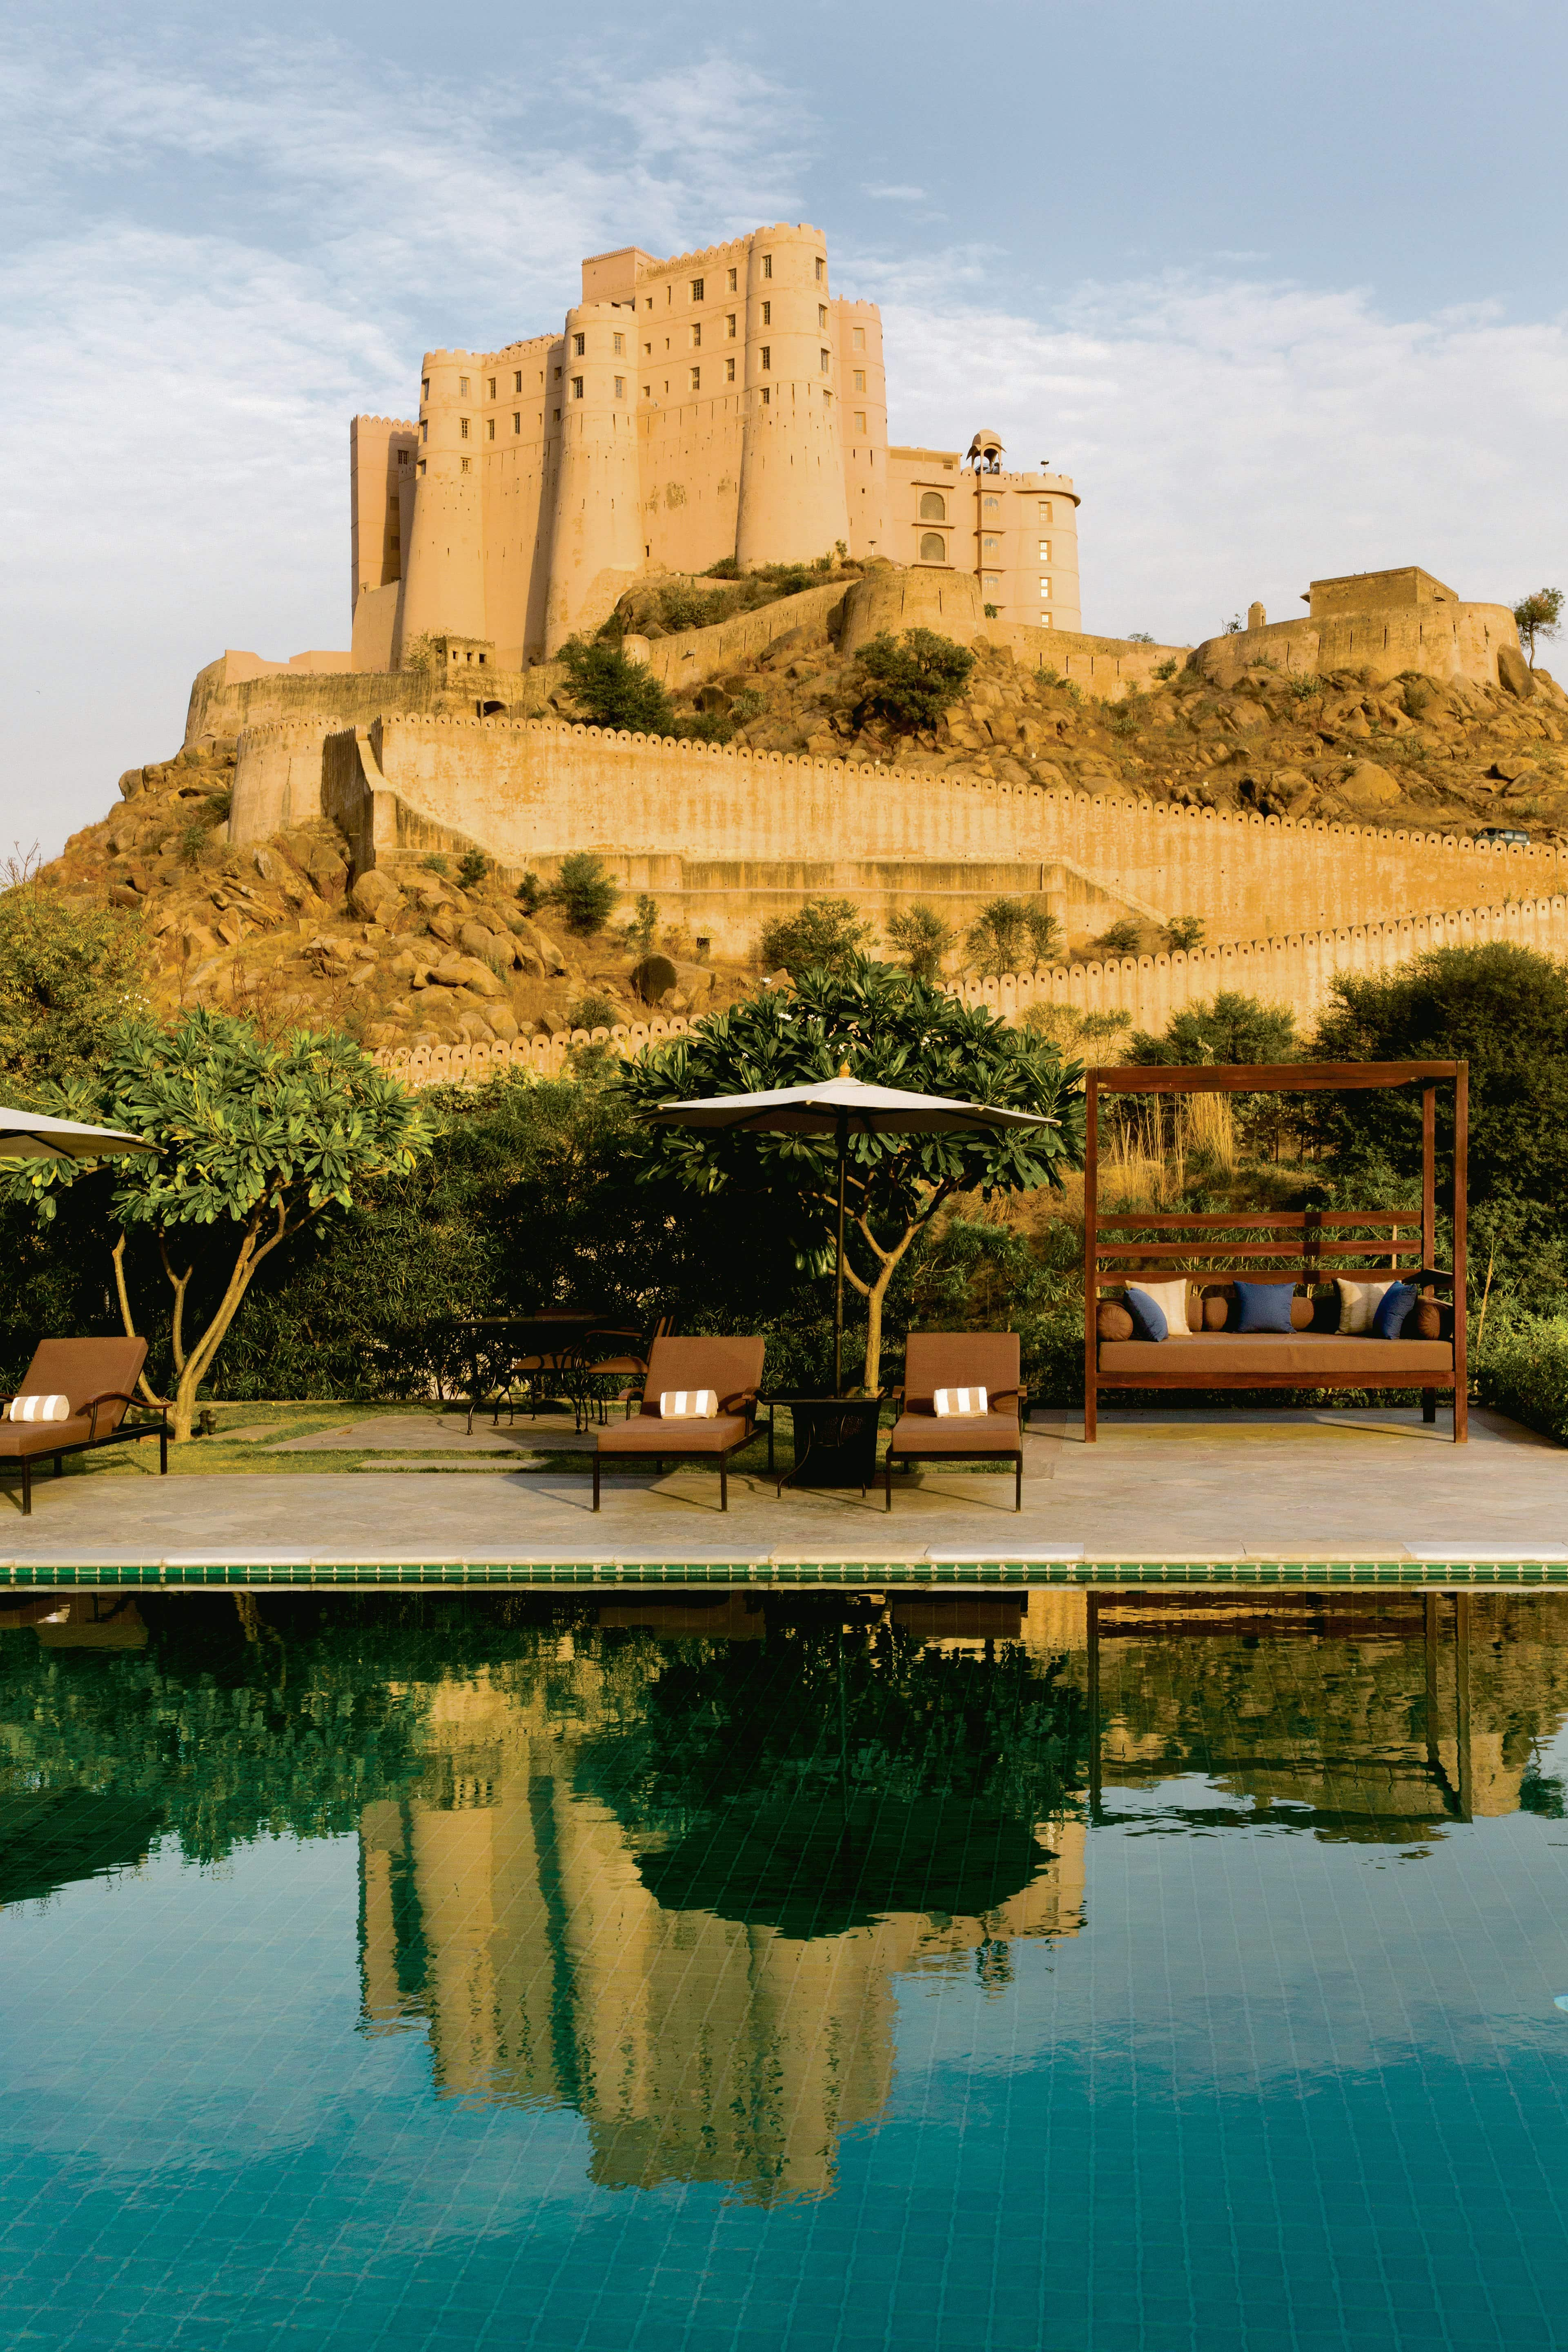 The Alila Fort Bishangarh in Rajasthan